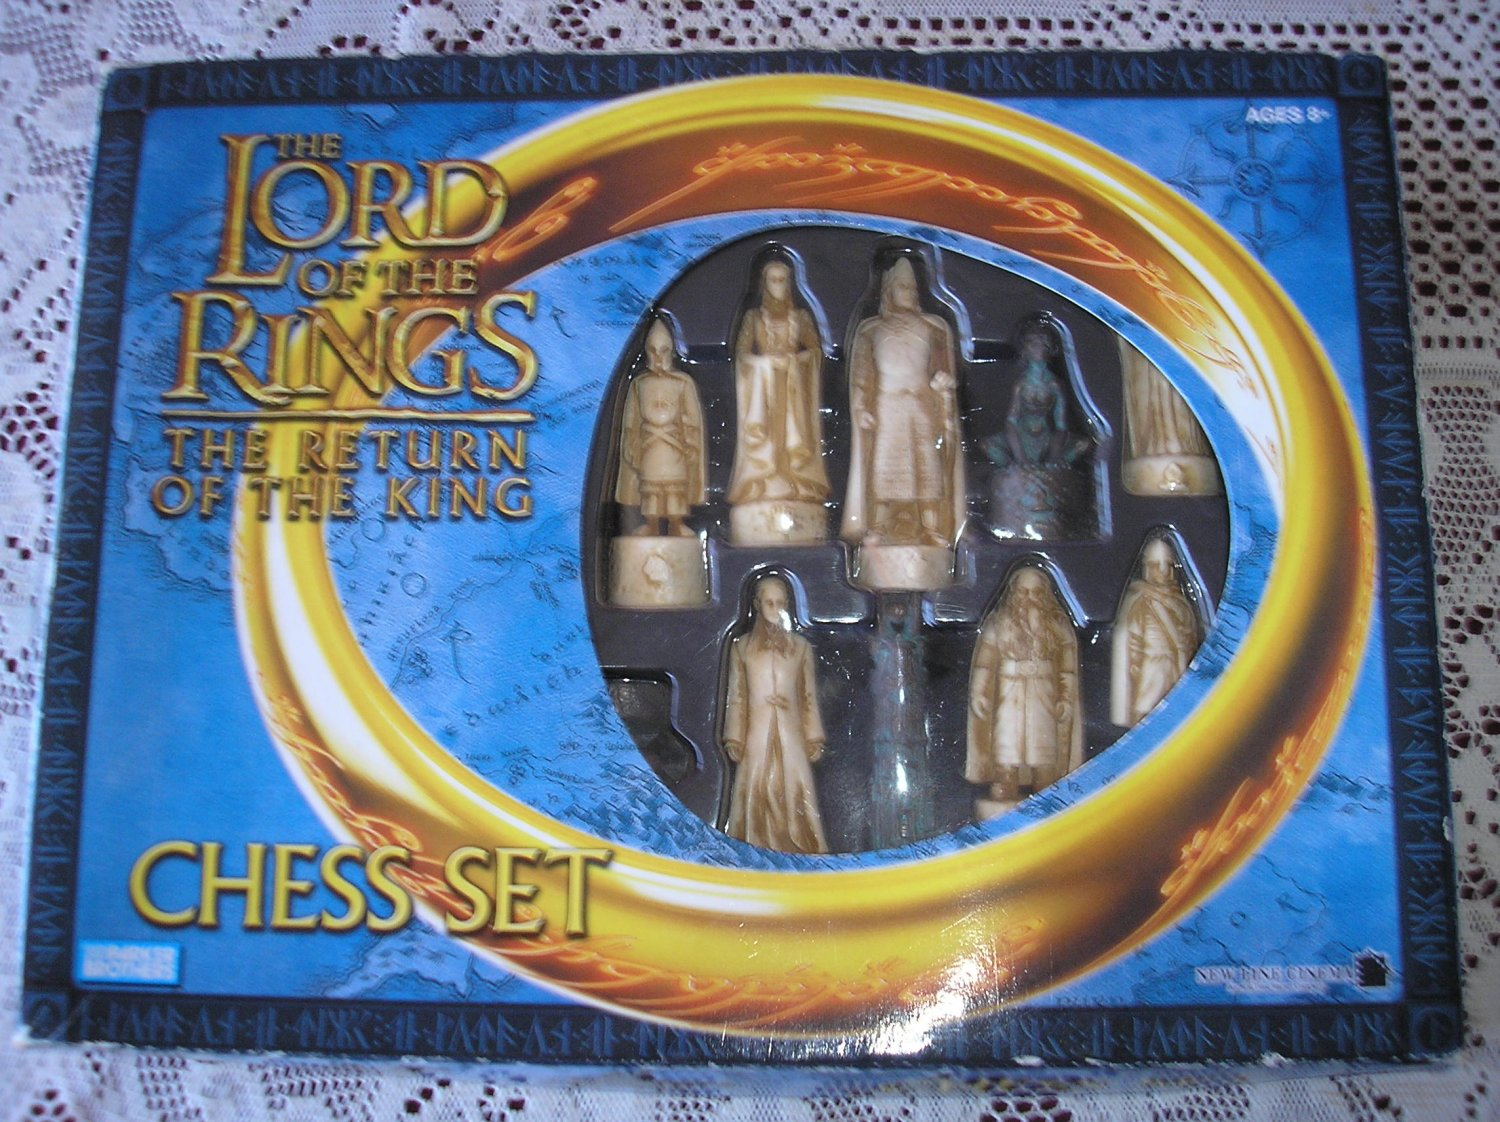 THE LORD of the RINGS: THE RETURN OF THE KING Chess Set by Parker Brothers from 2003!